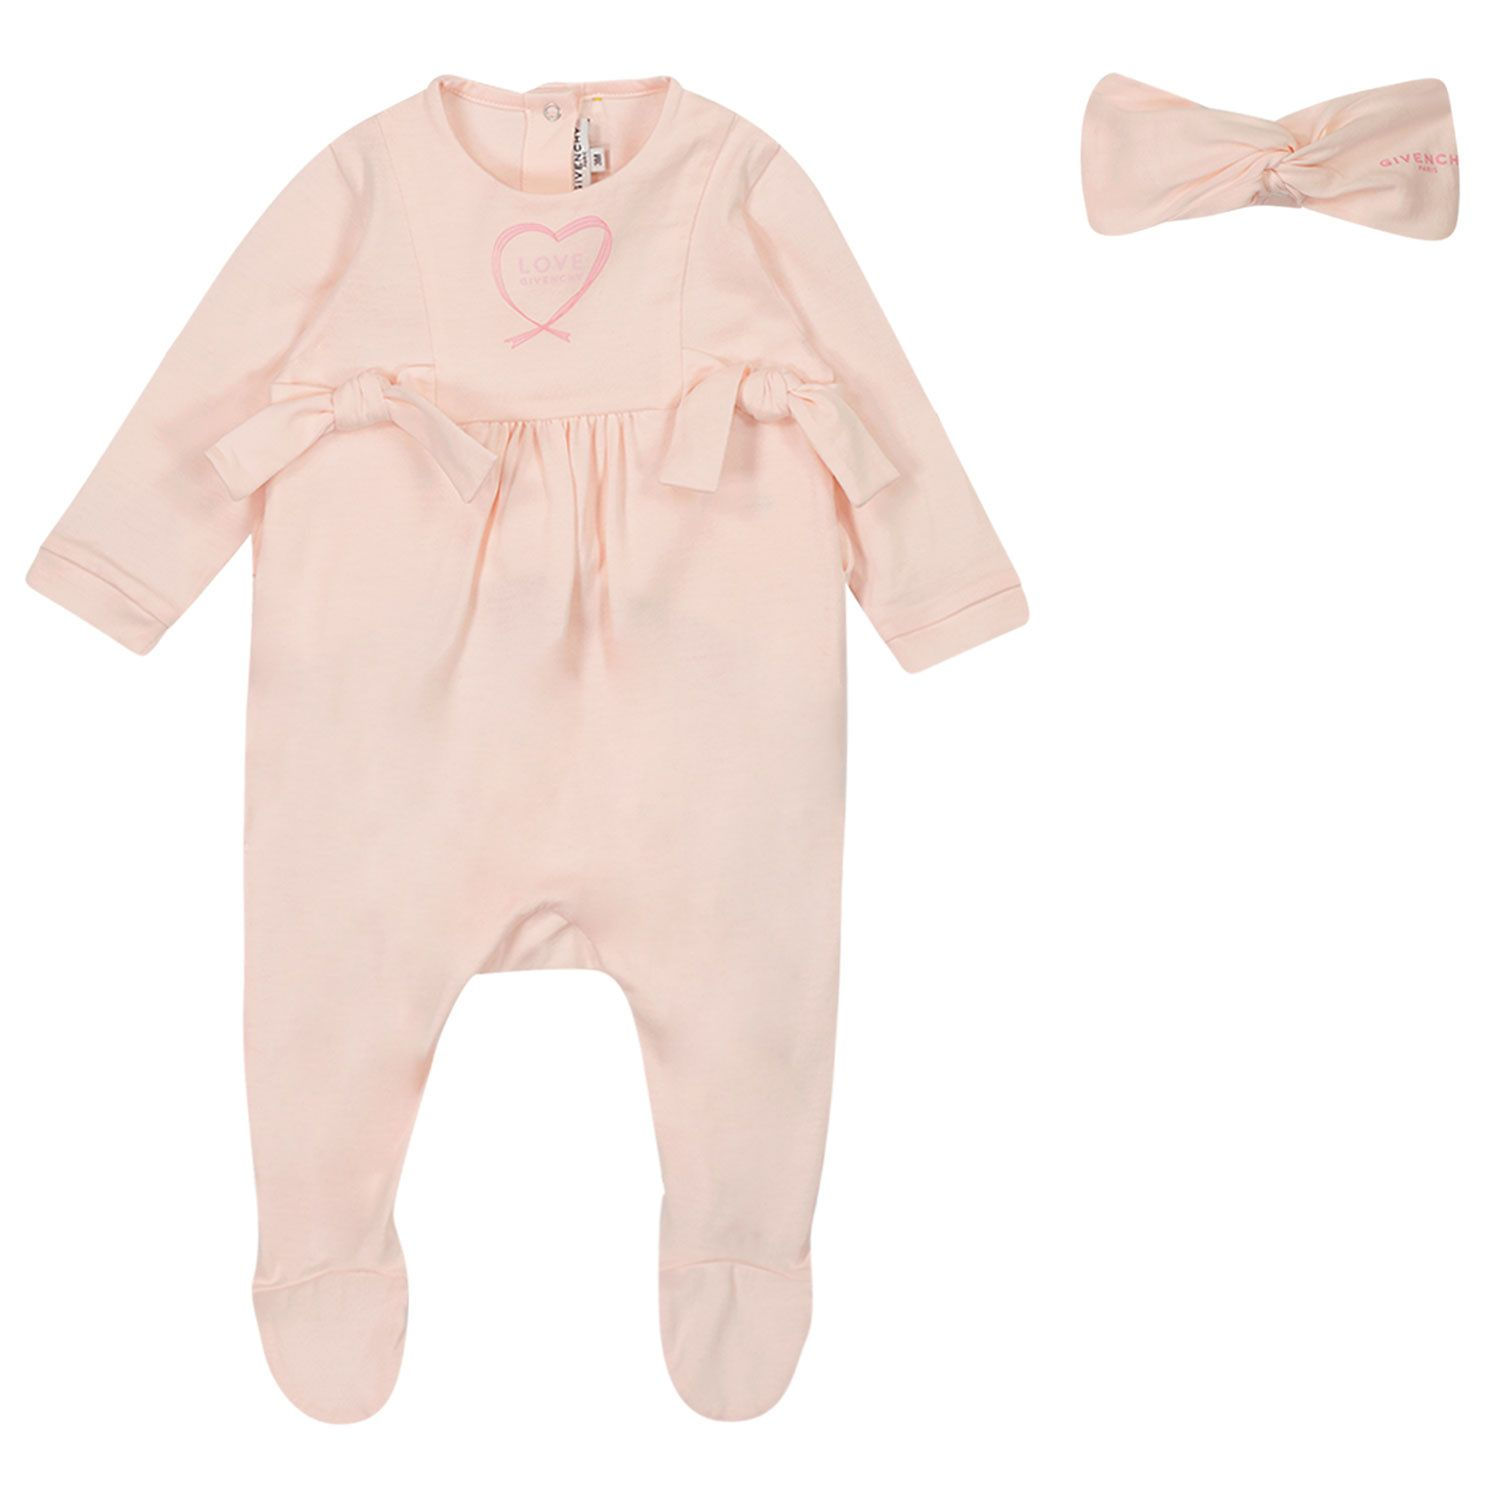 Picture of Givenchy H98108 baby playsuit light pink